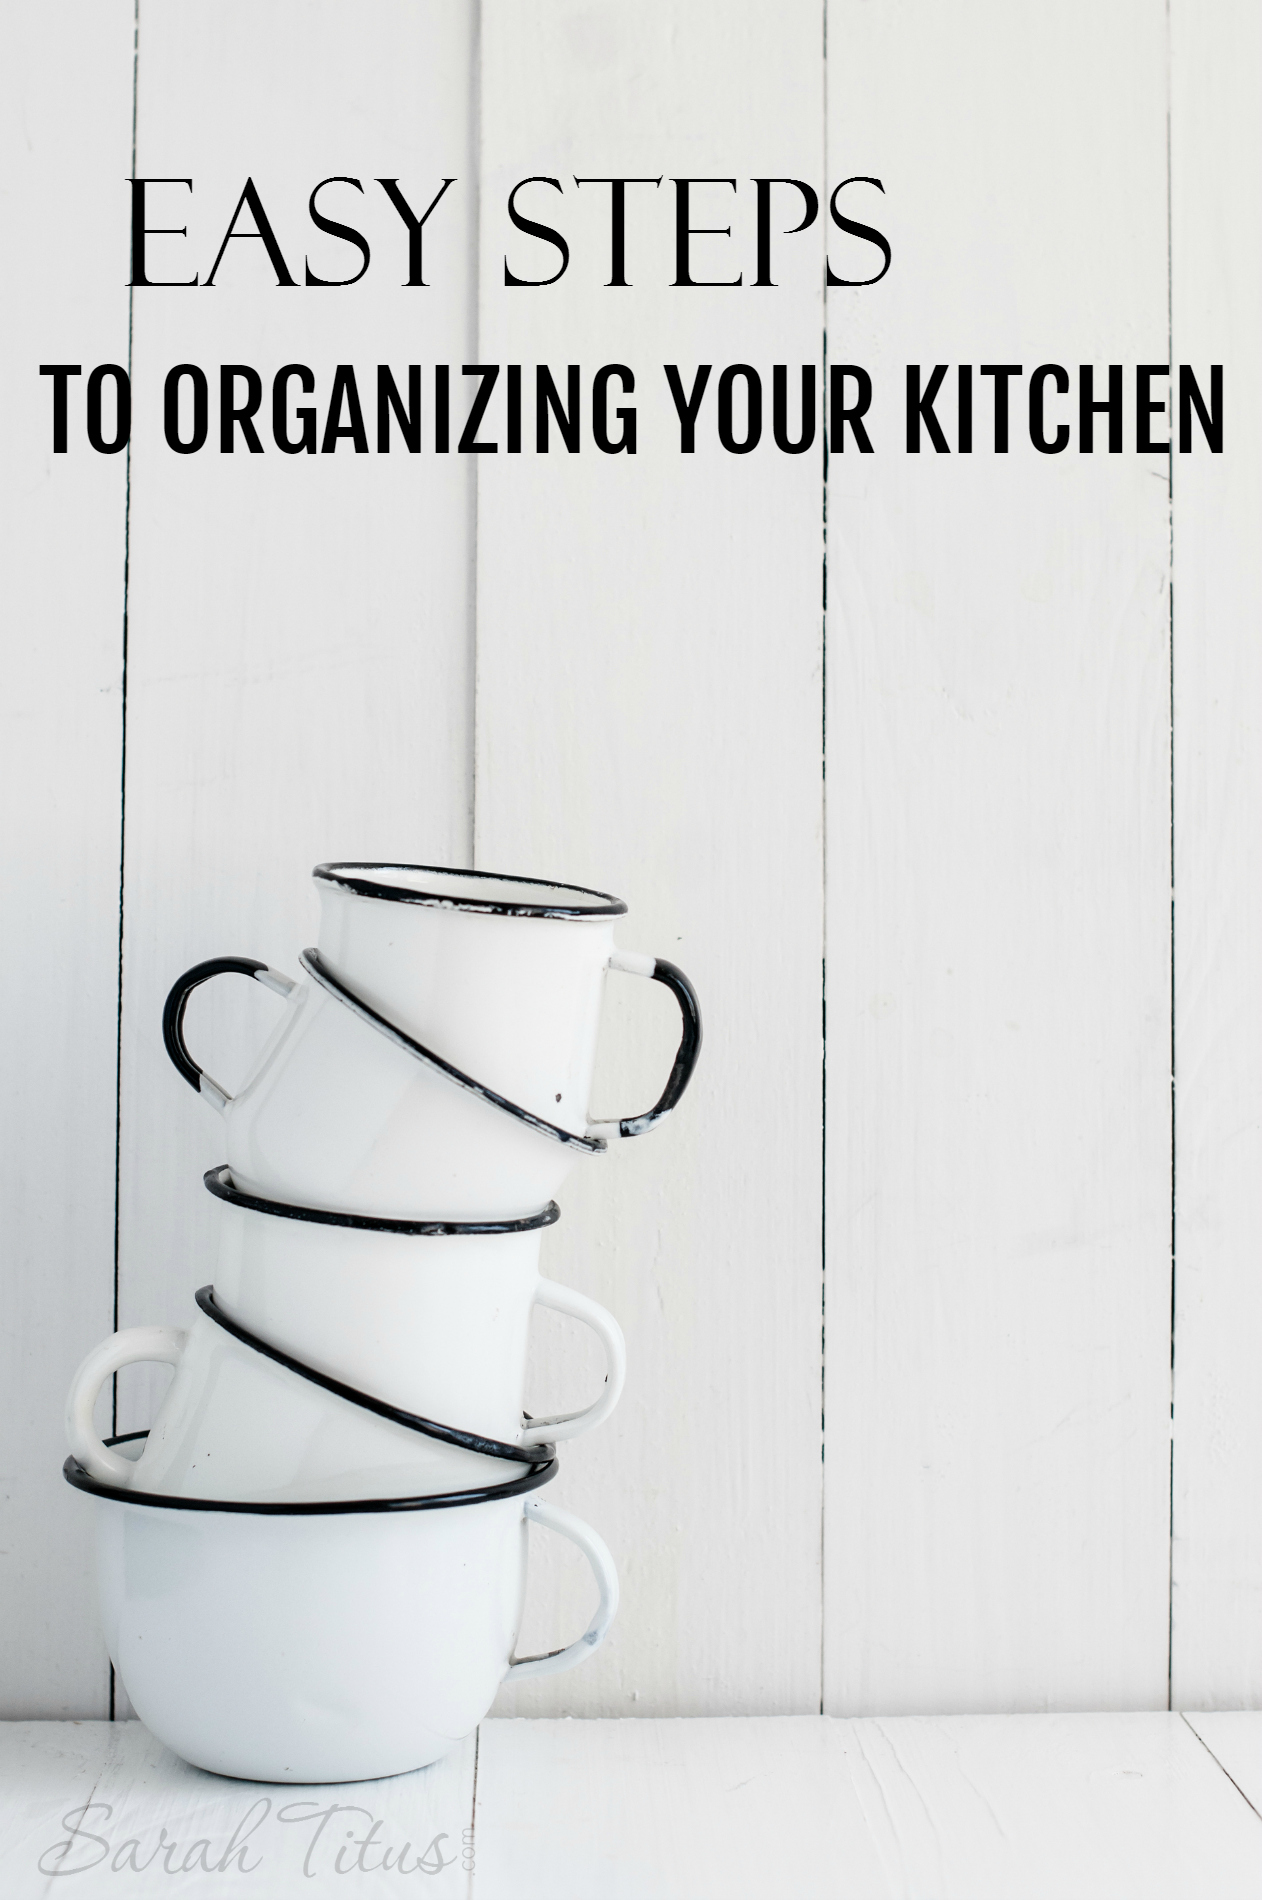 Easy Steps to Organizing Your Kitchen